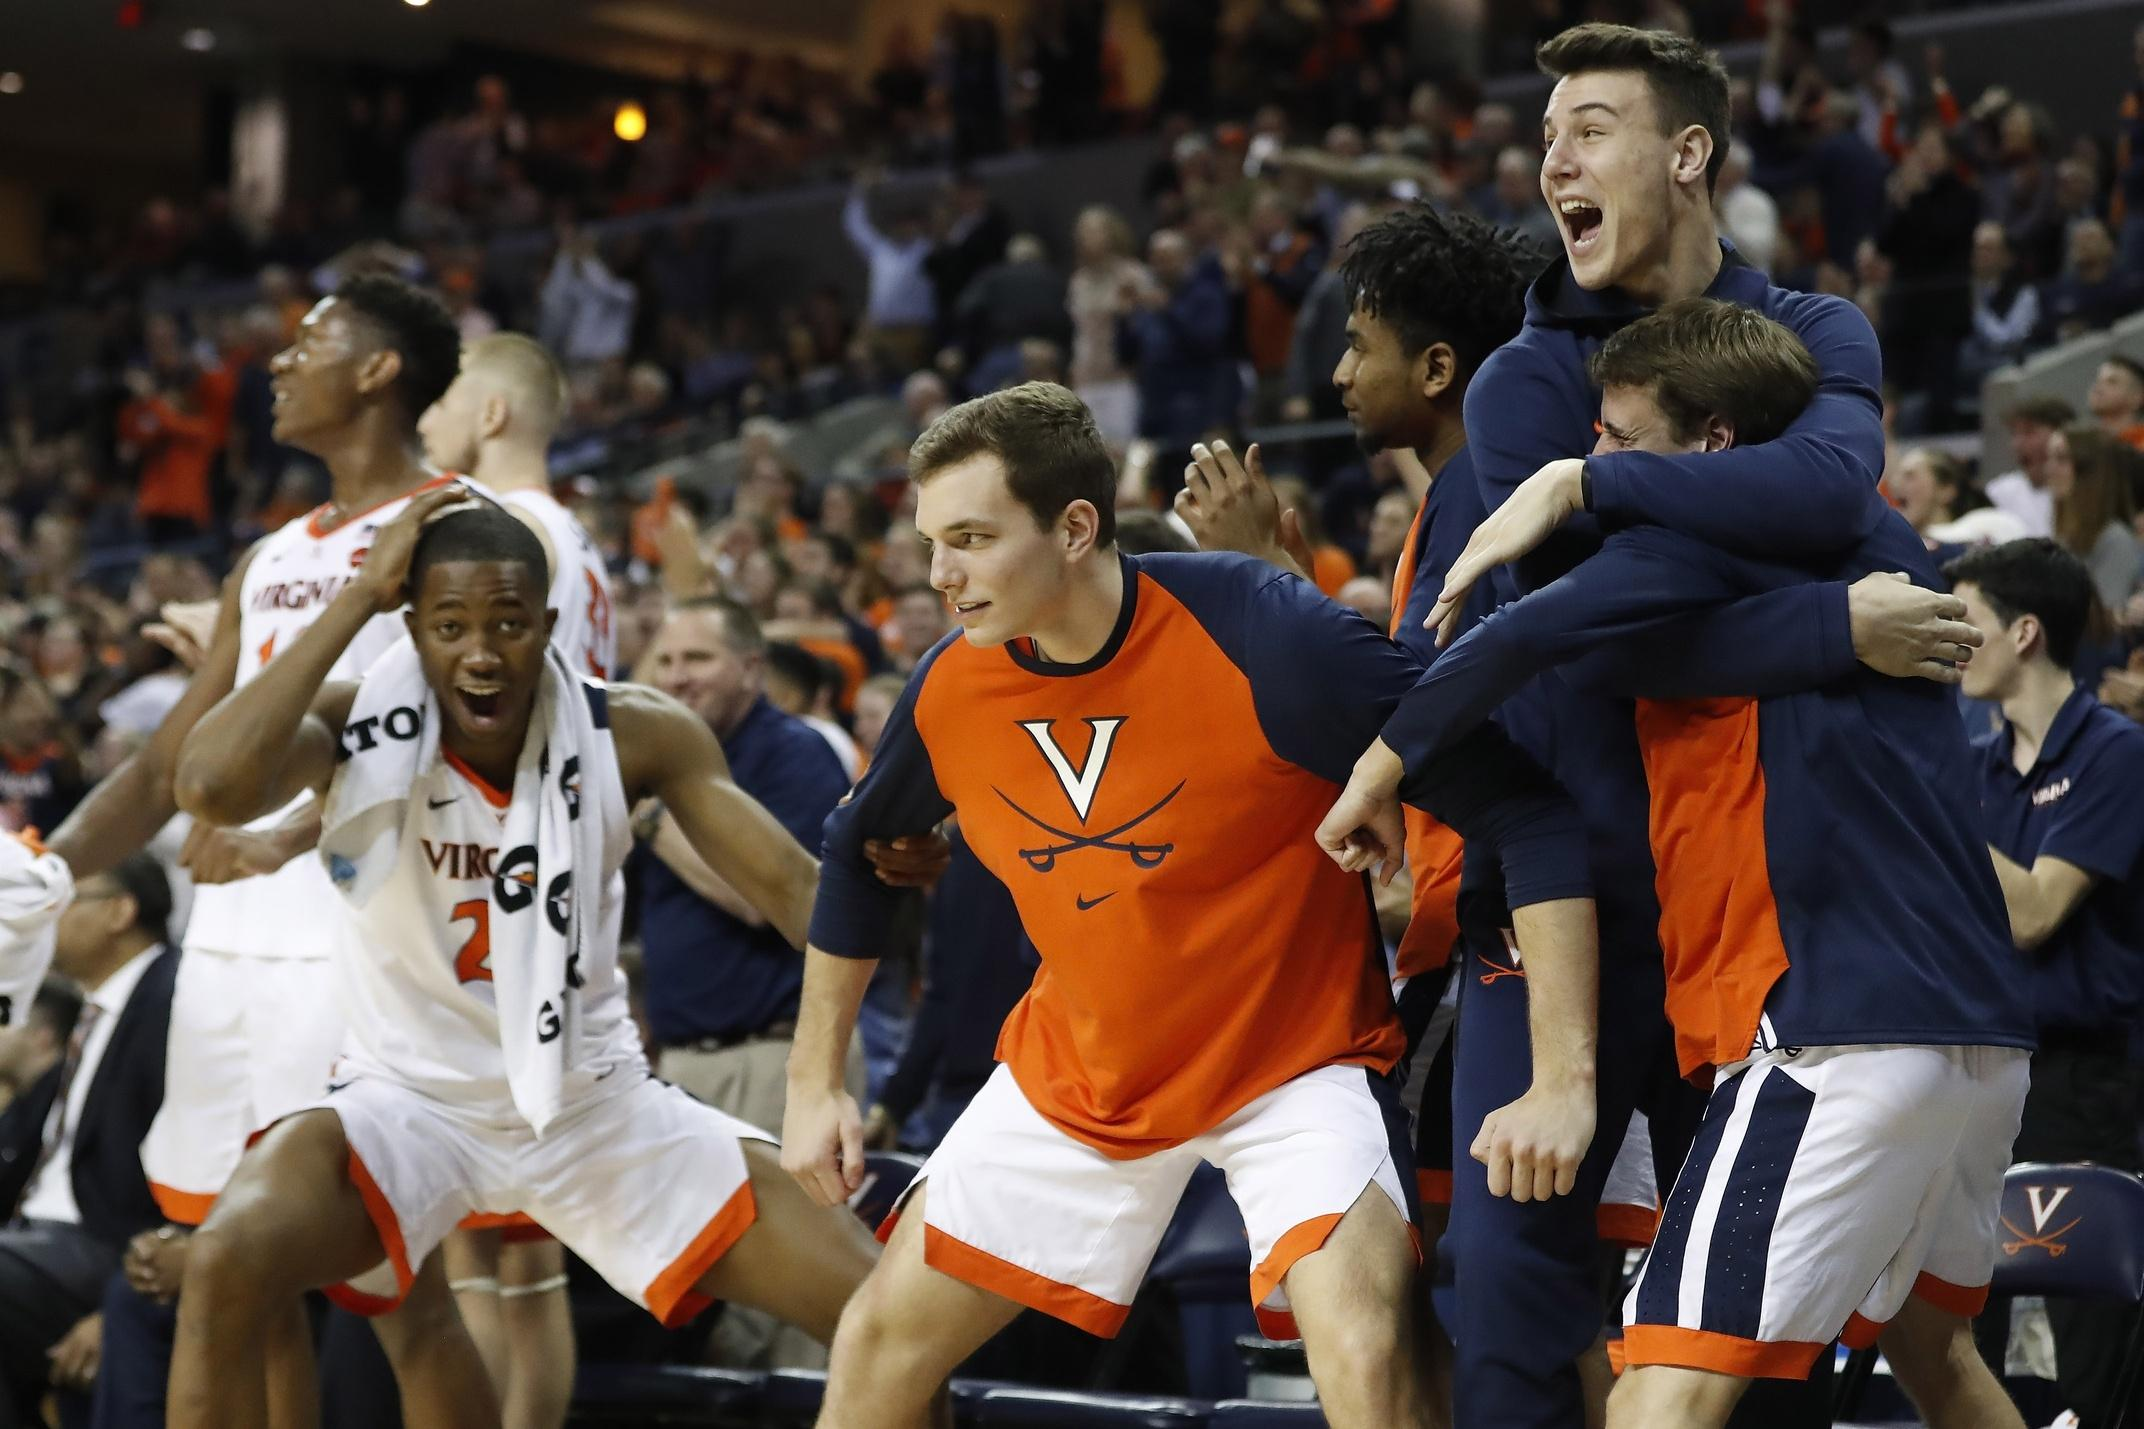 Virginia basketball is the only team left undefeated